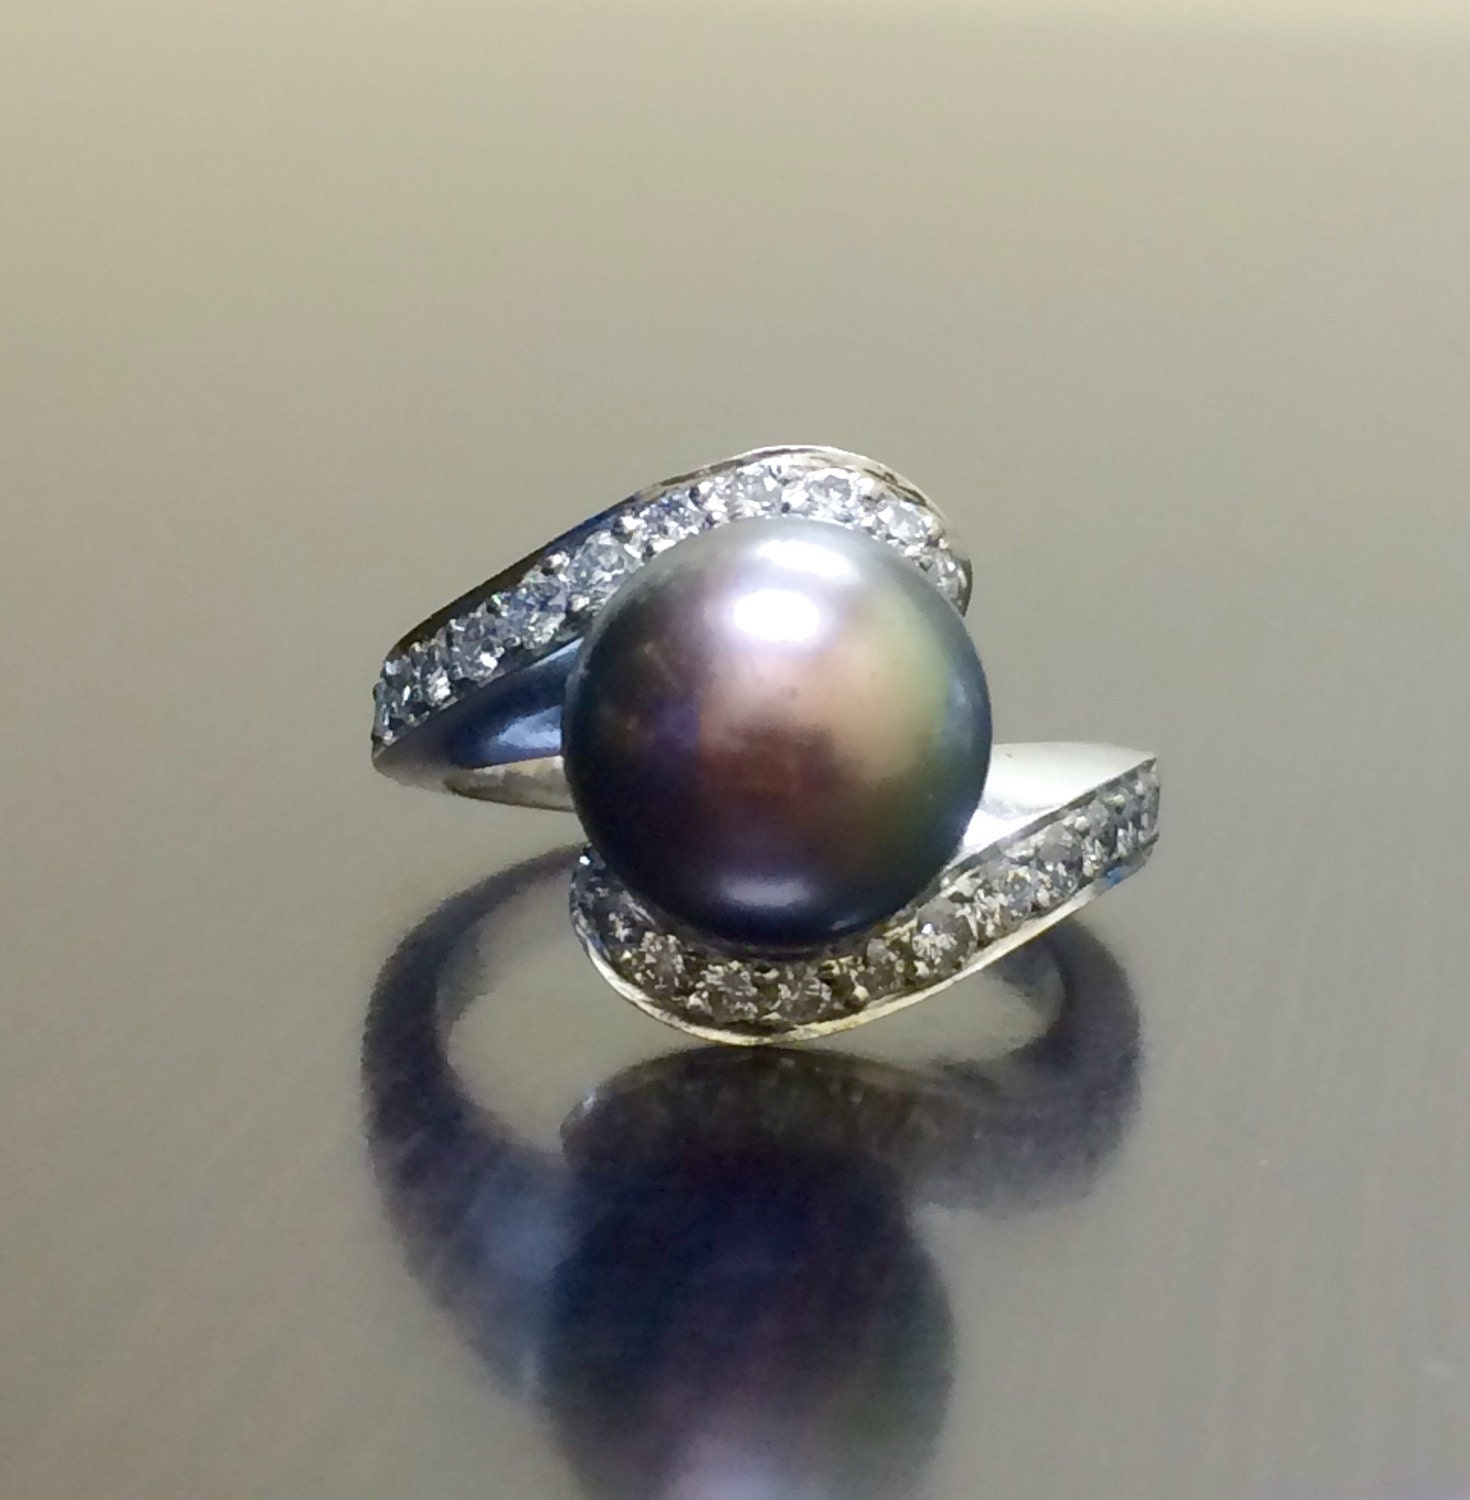 water fresh ring rings hansen edit pearl engagement img products jens freshwater design